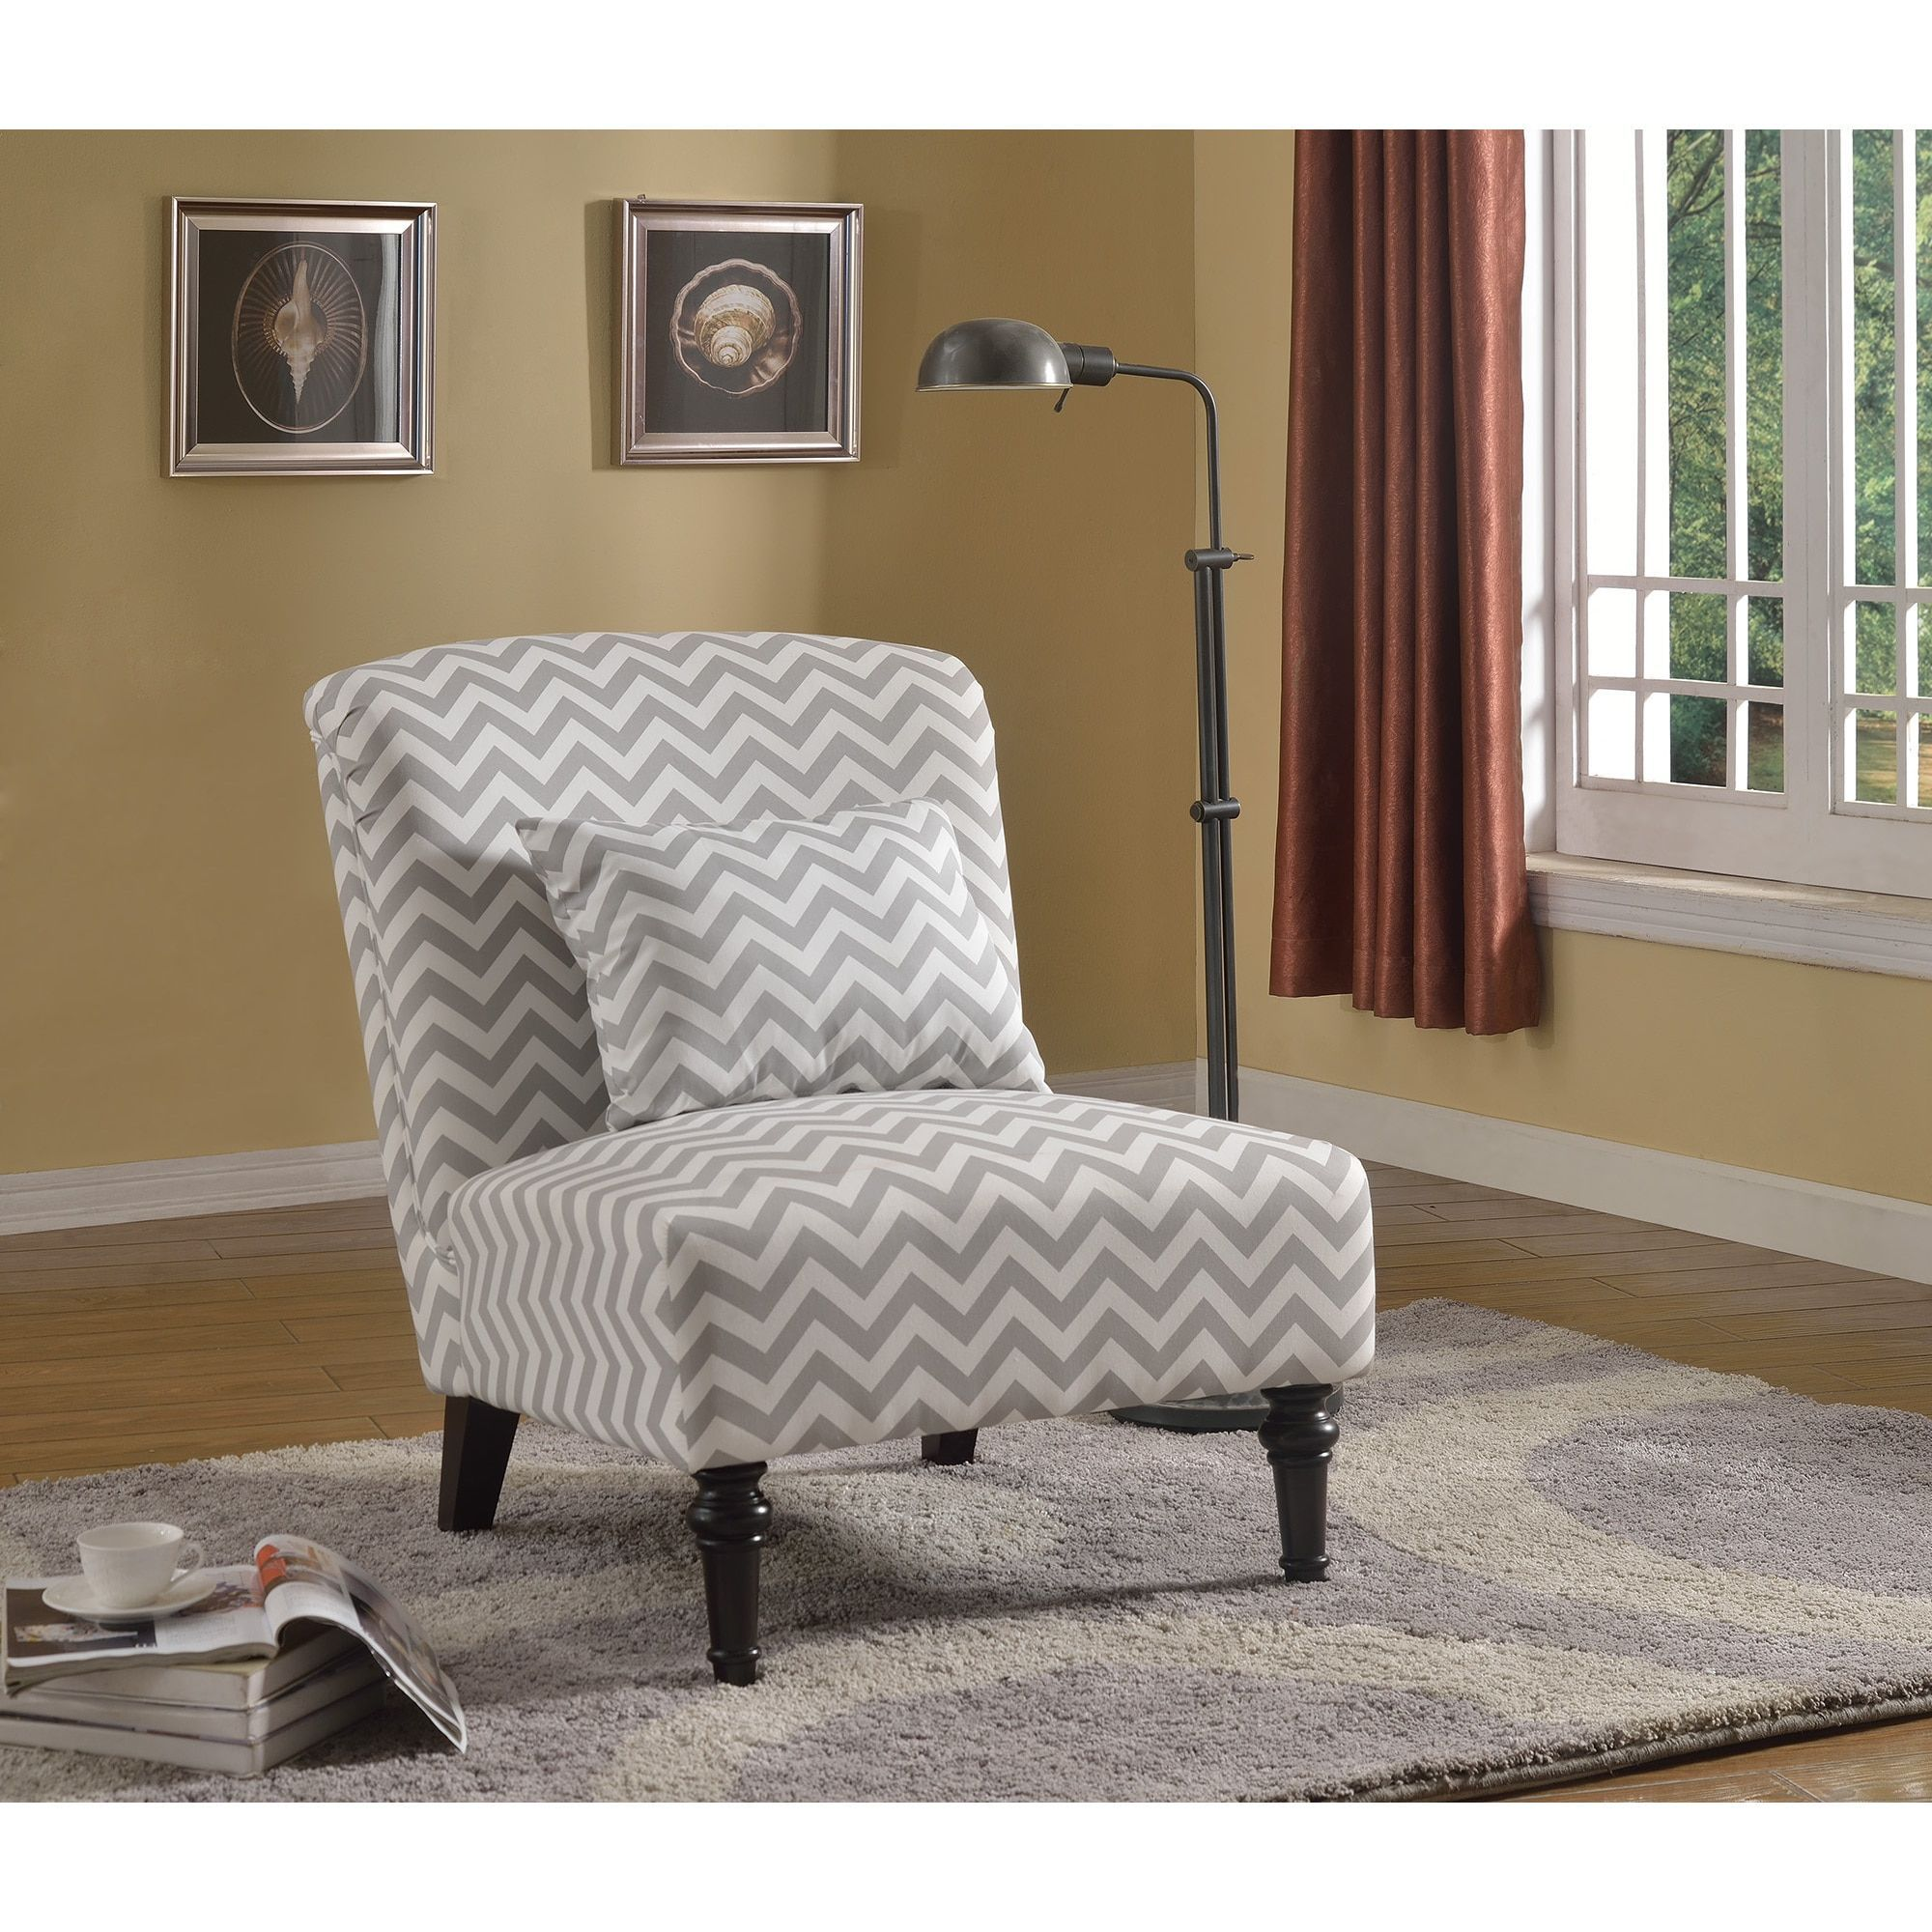 Best Master Furniture Coastal Living Room Accent Chair 400 x 300